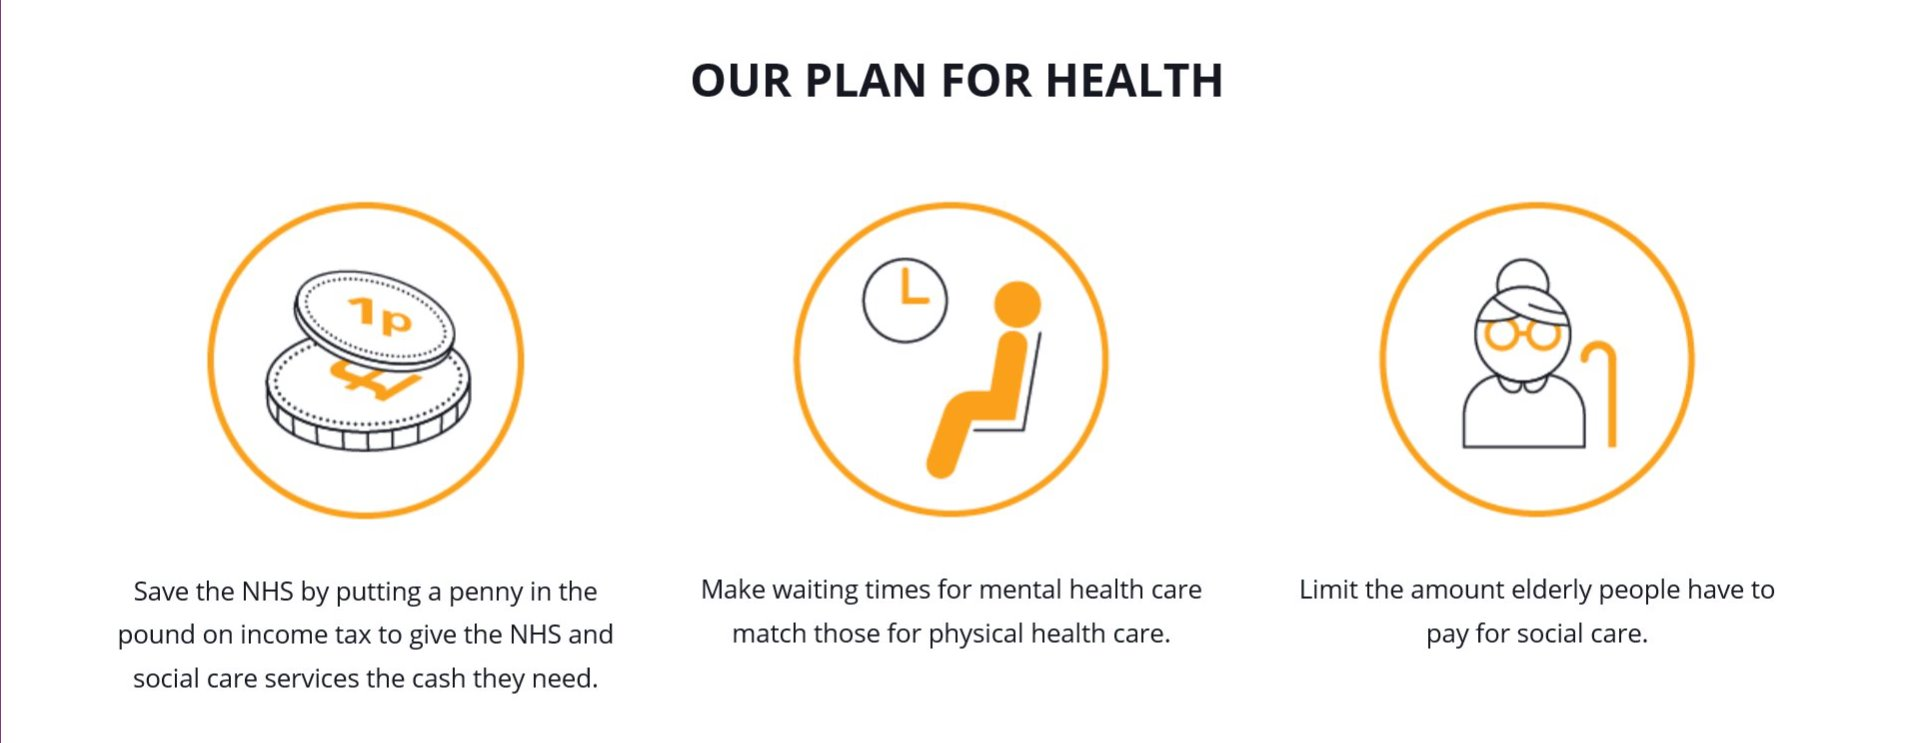 Lib Dems Our Plan for Health: Save the NHS by putting a penny in the pound on income tax to give the NHS and social care services the cash they need. Make waiting times for mental health care match those for physical health care. Limit the amount elderly people have to pay for social care.